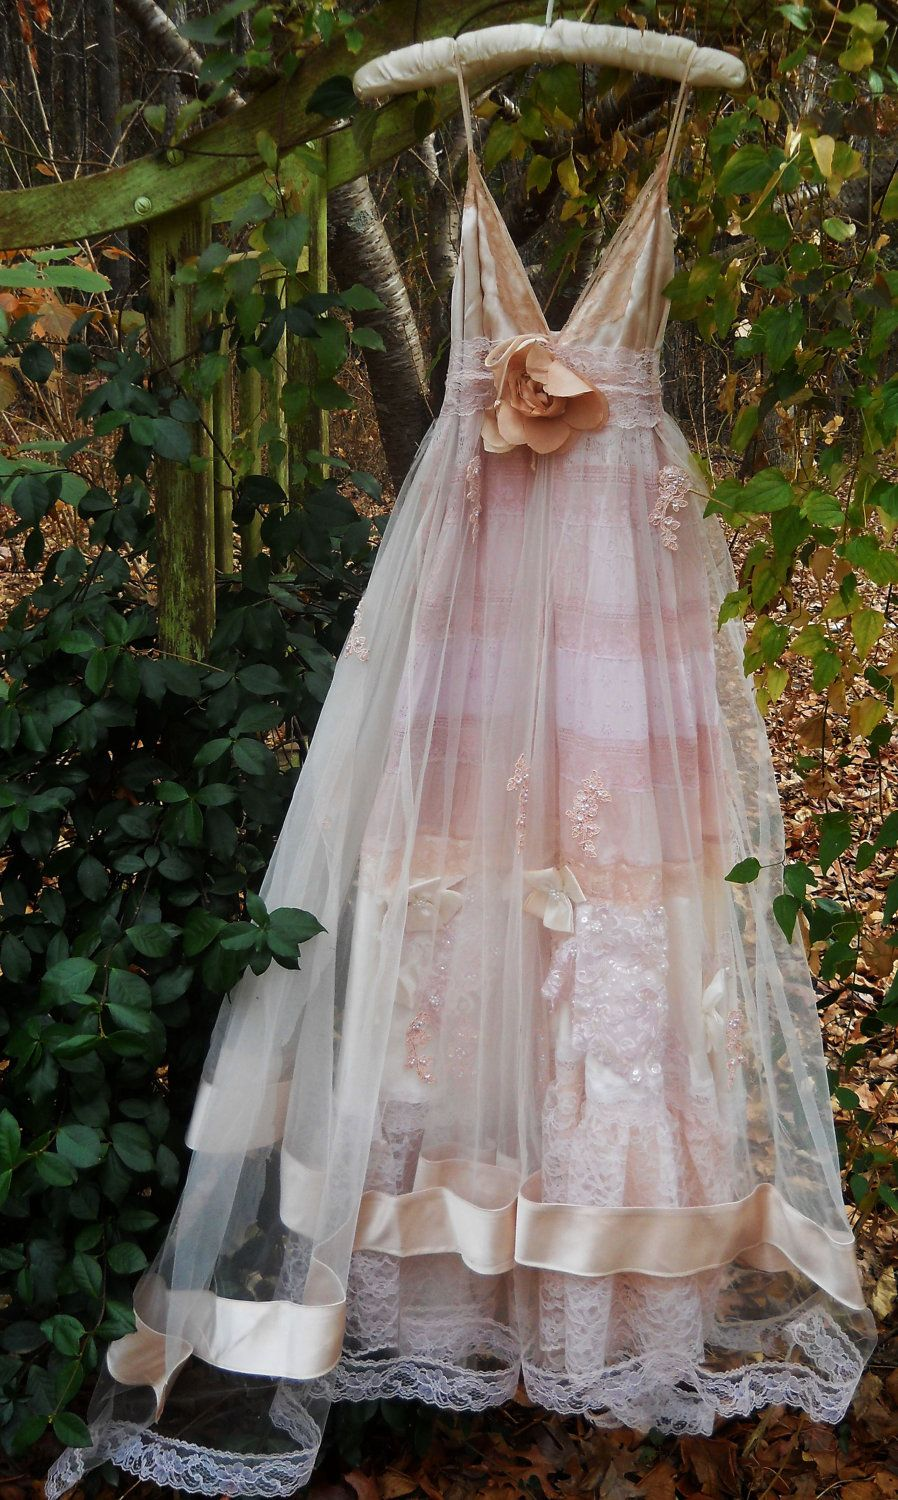 Blush Wedding Dress Vintage Tulle Satin Beading Ethereal Bohemian